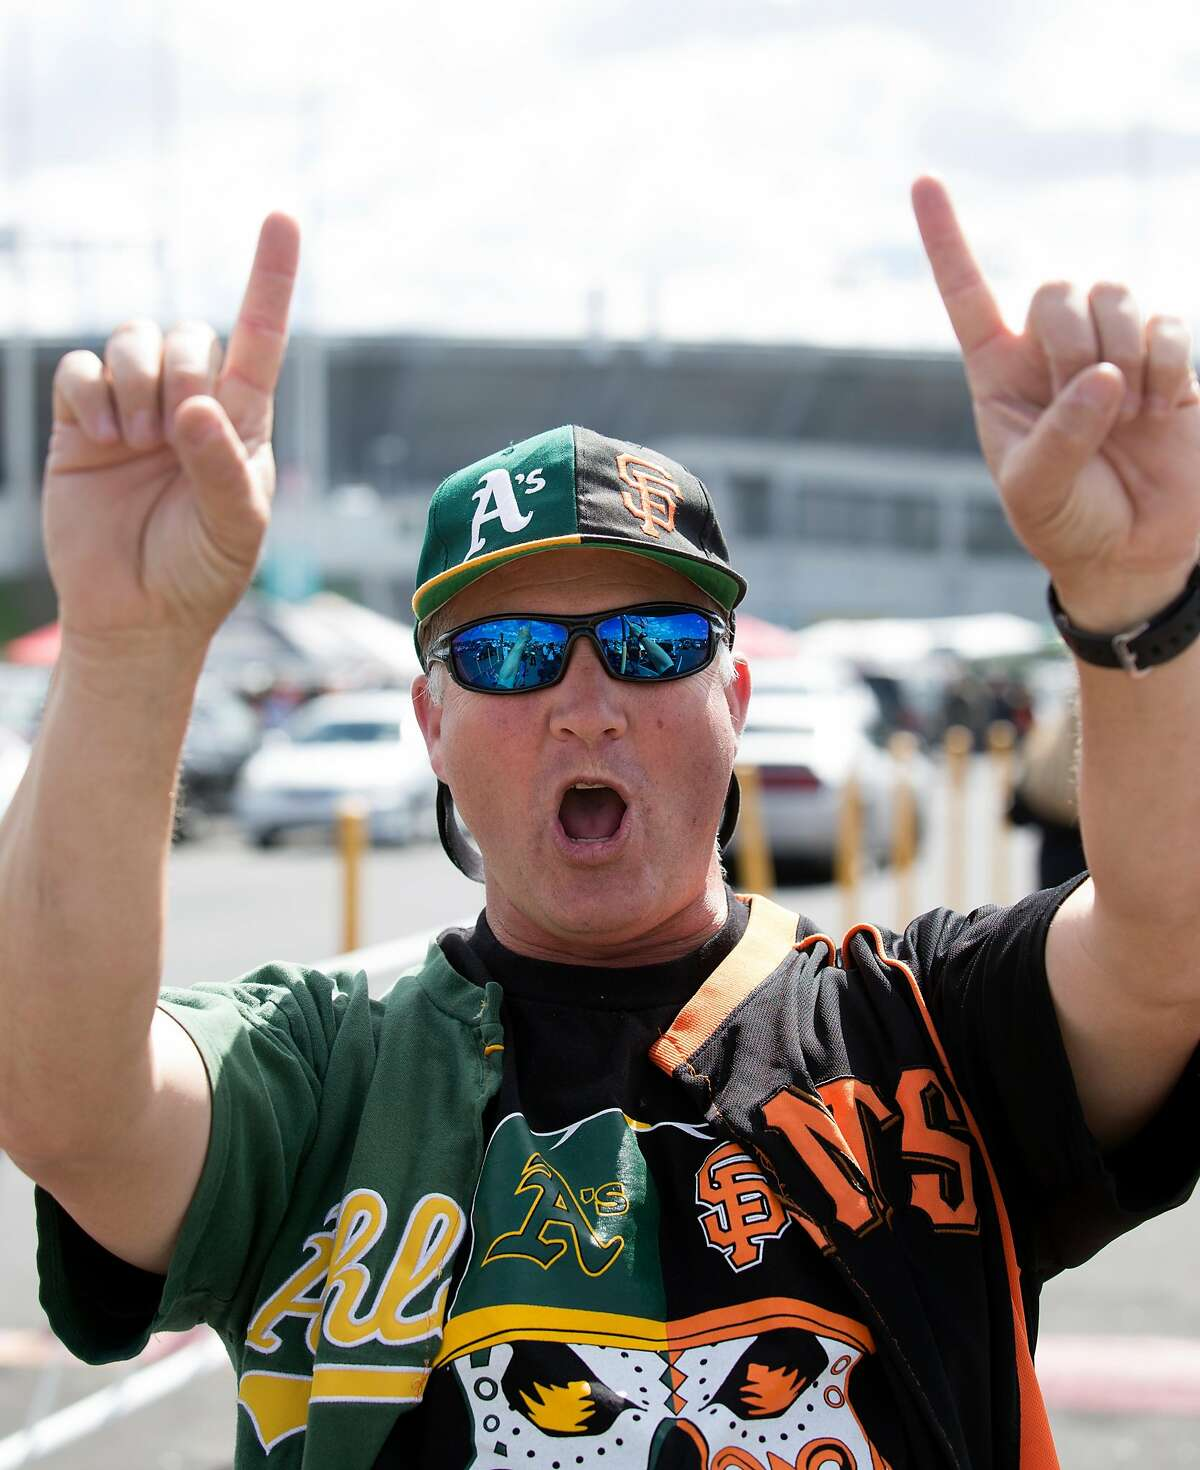 Jeff Kehr of San Ramon, Calif., whose loyalties are obvious split between the Oakland Athletics and San Francisco Giants, tailgates before a the first game of the Bay Bridge Series, Sunday, March 25, 2018 in Oakland, Calif.